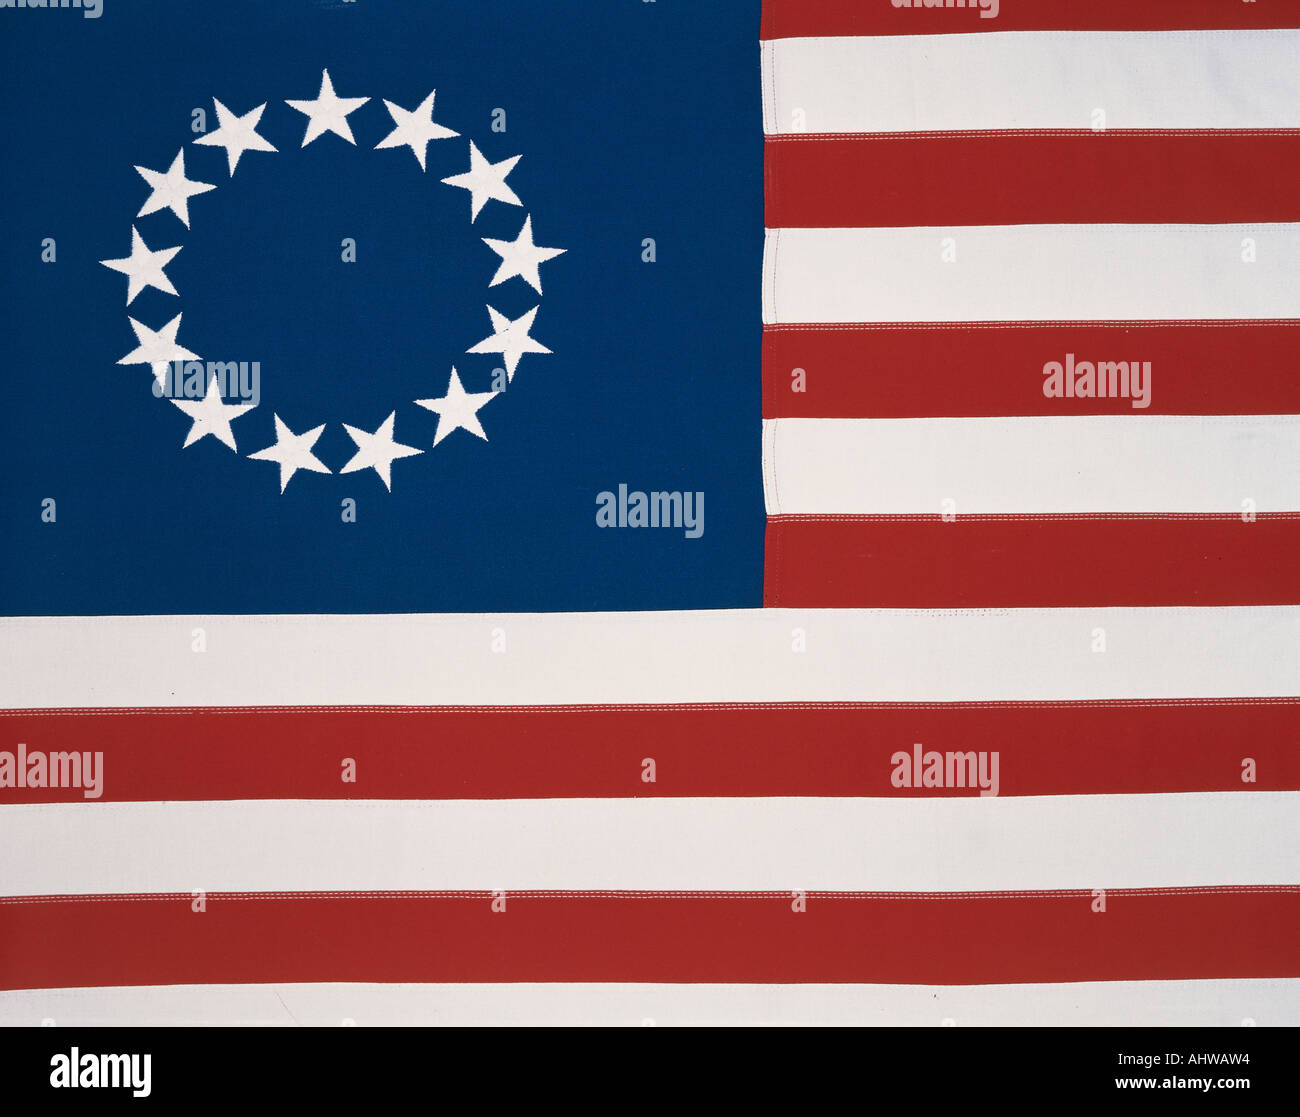 This is the original colonial flag with 13 stars representing the 13 this is the original colonial flag with 13 stars representing the 13 original states at the time of the american revolutionary publicscrutiny Choice Image